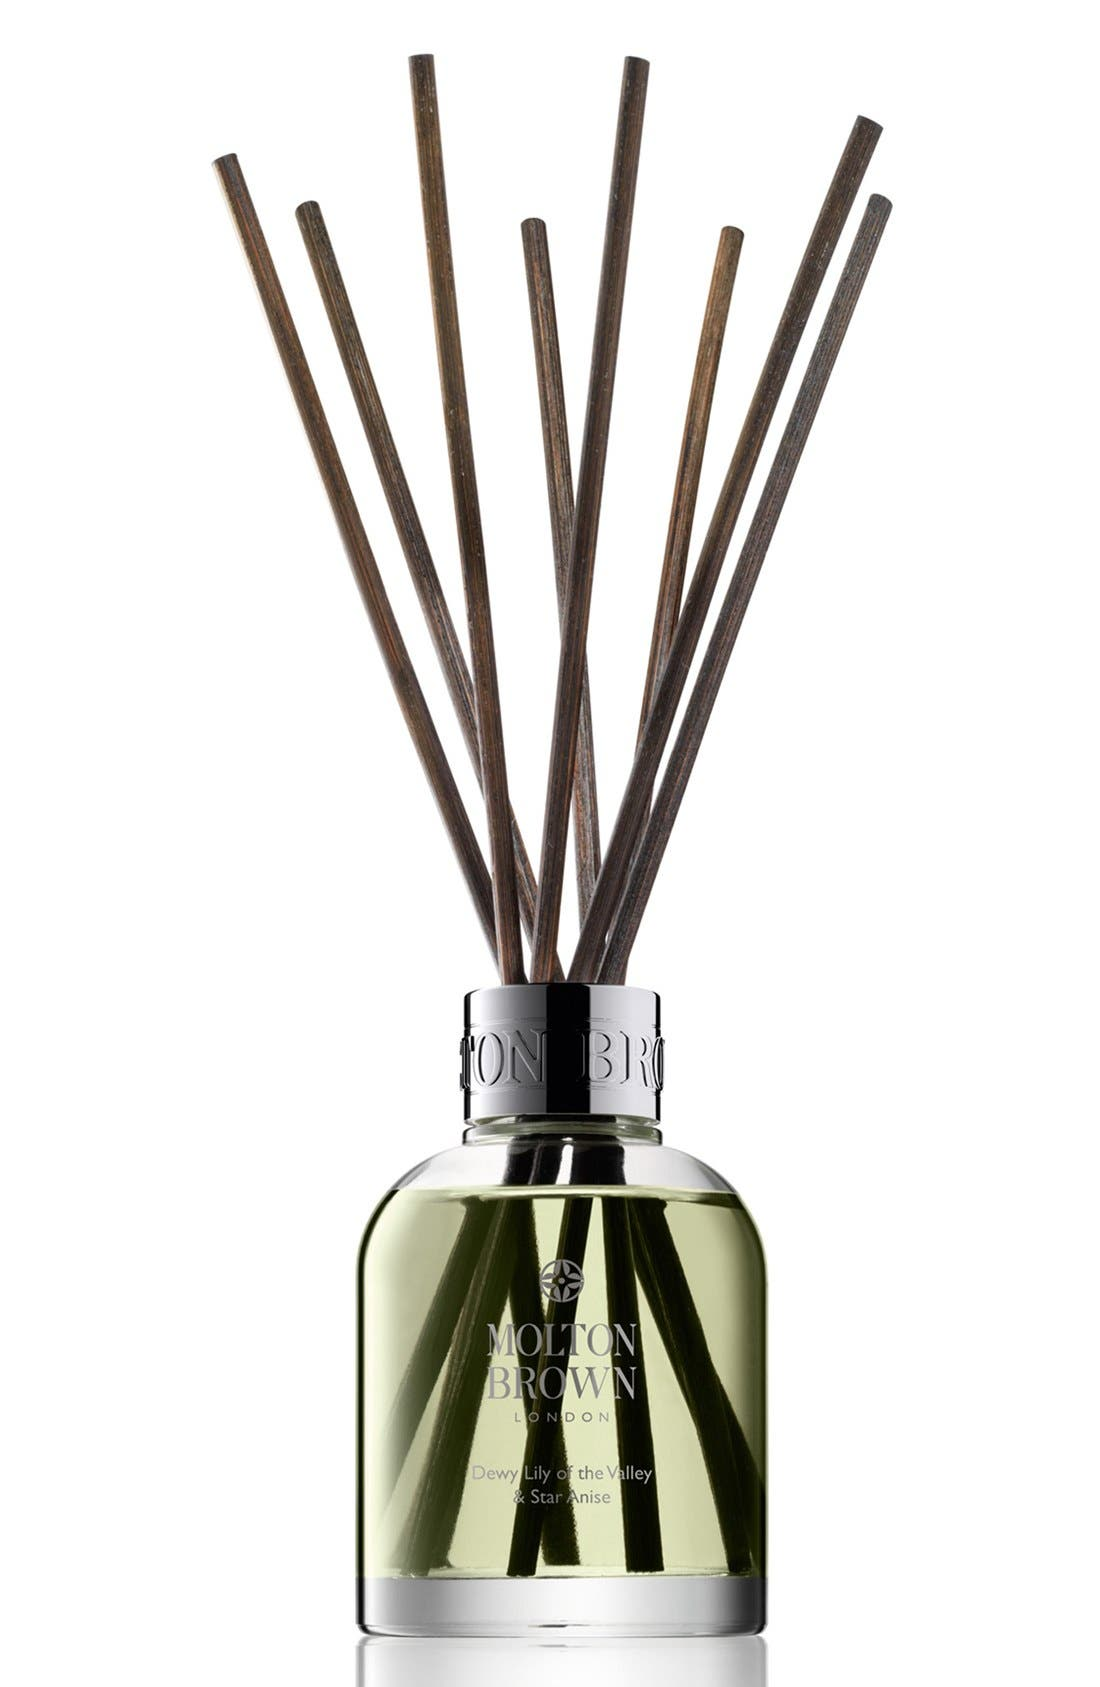 MOLTON BROWN London 'Dewy Lily of the Valley & Star Anise' Aroma Reeds